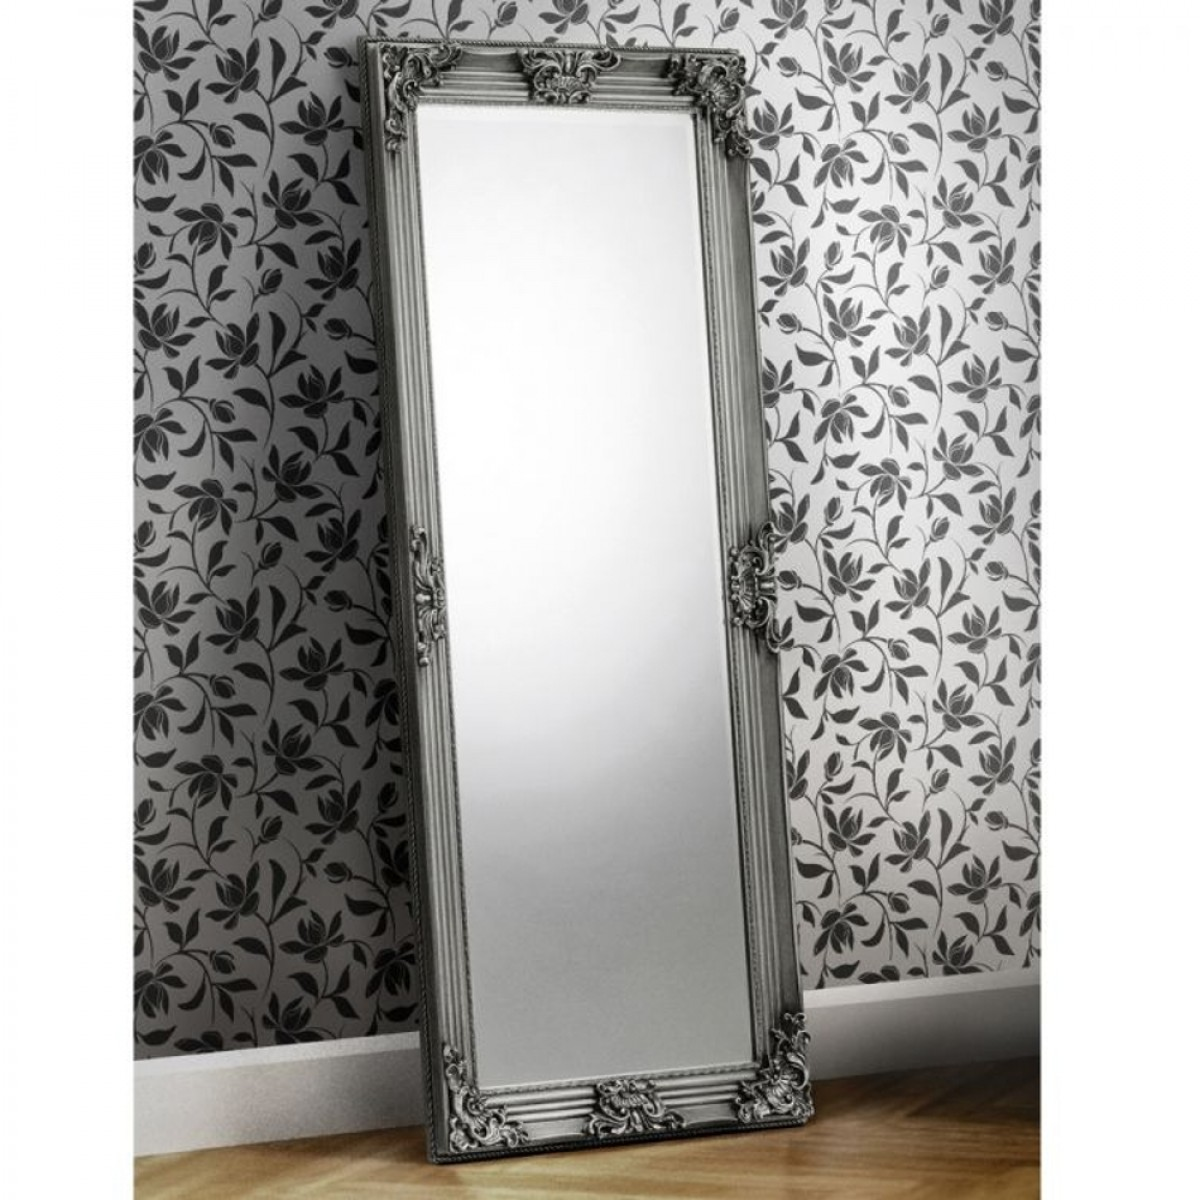 Rococo Pewter Lean-To Dress Mirror - 80 x 170 cm